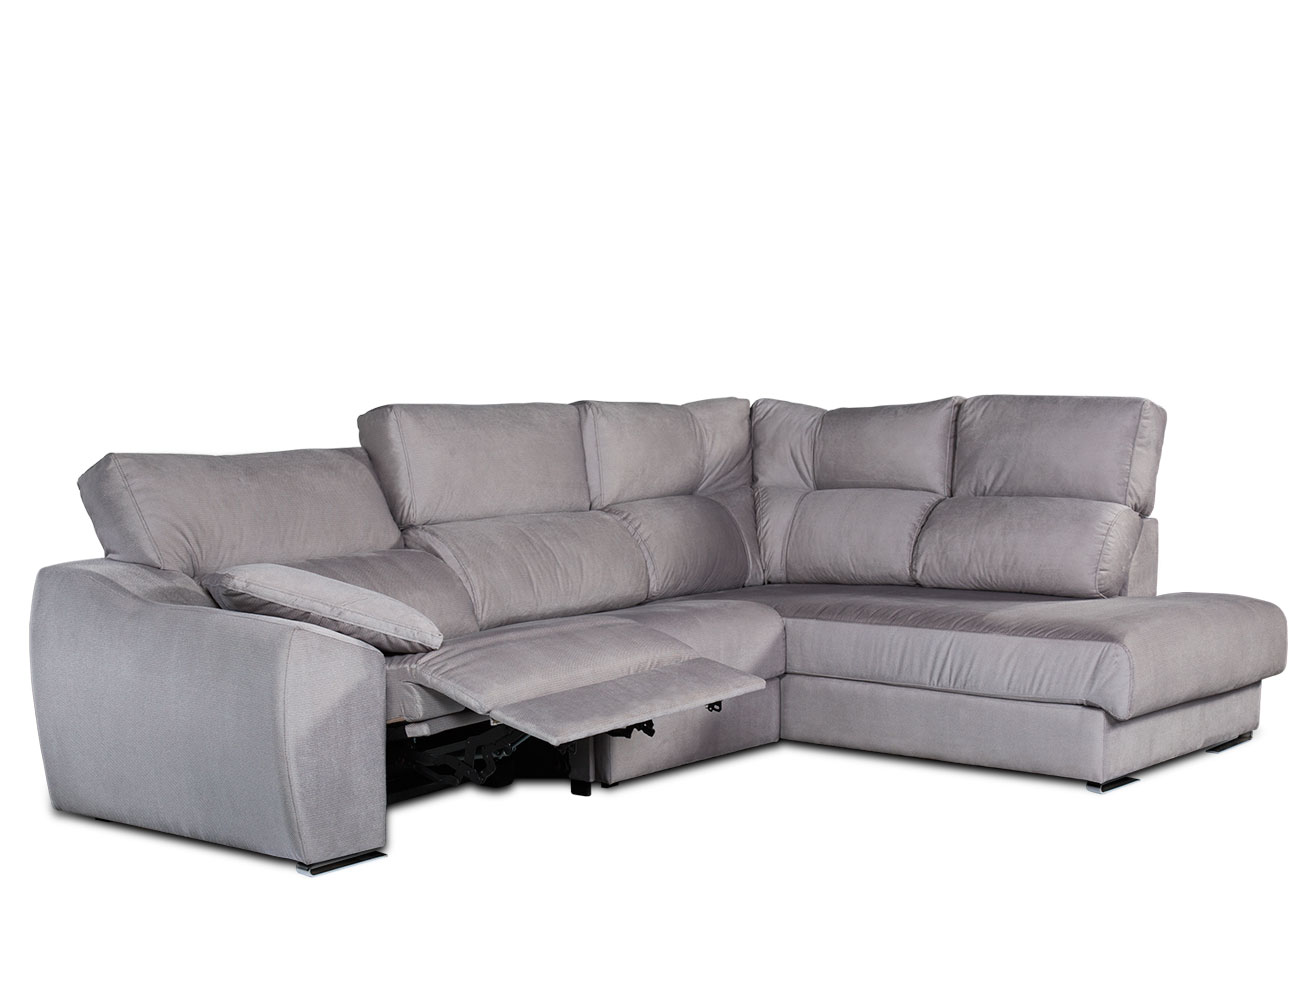 Sofa chaiselongue rincon electrico 212